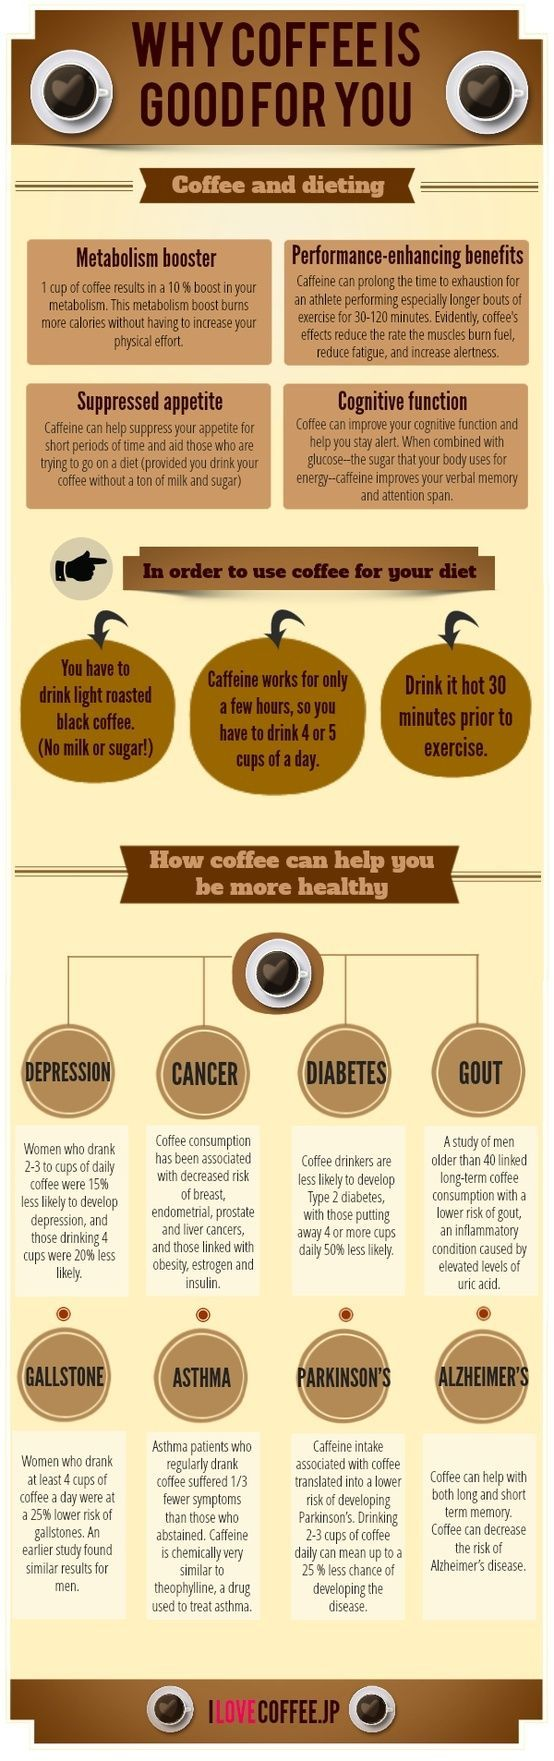 How Coffee Can Help Keep Be More Healthy